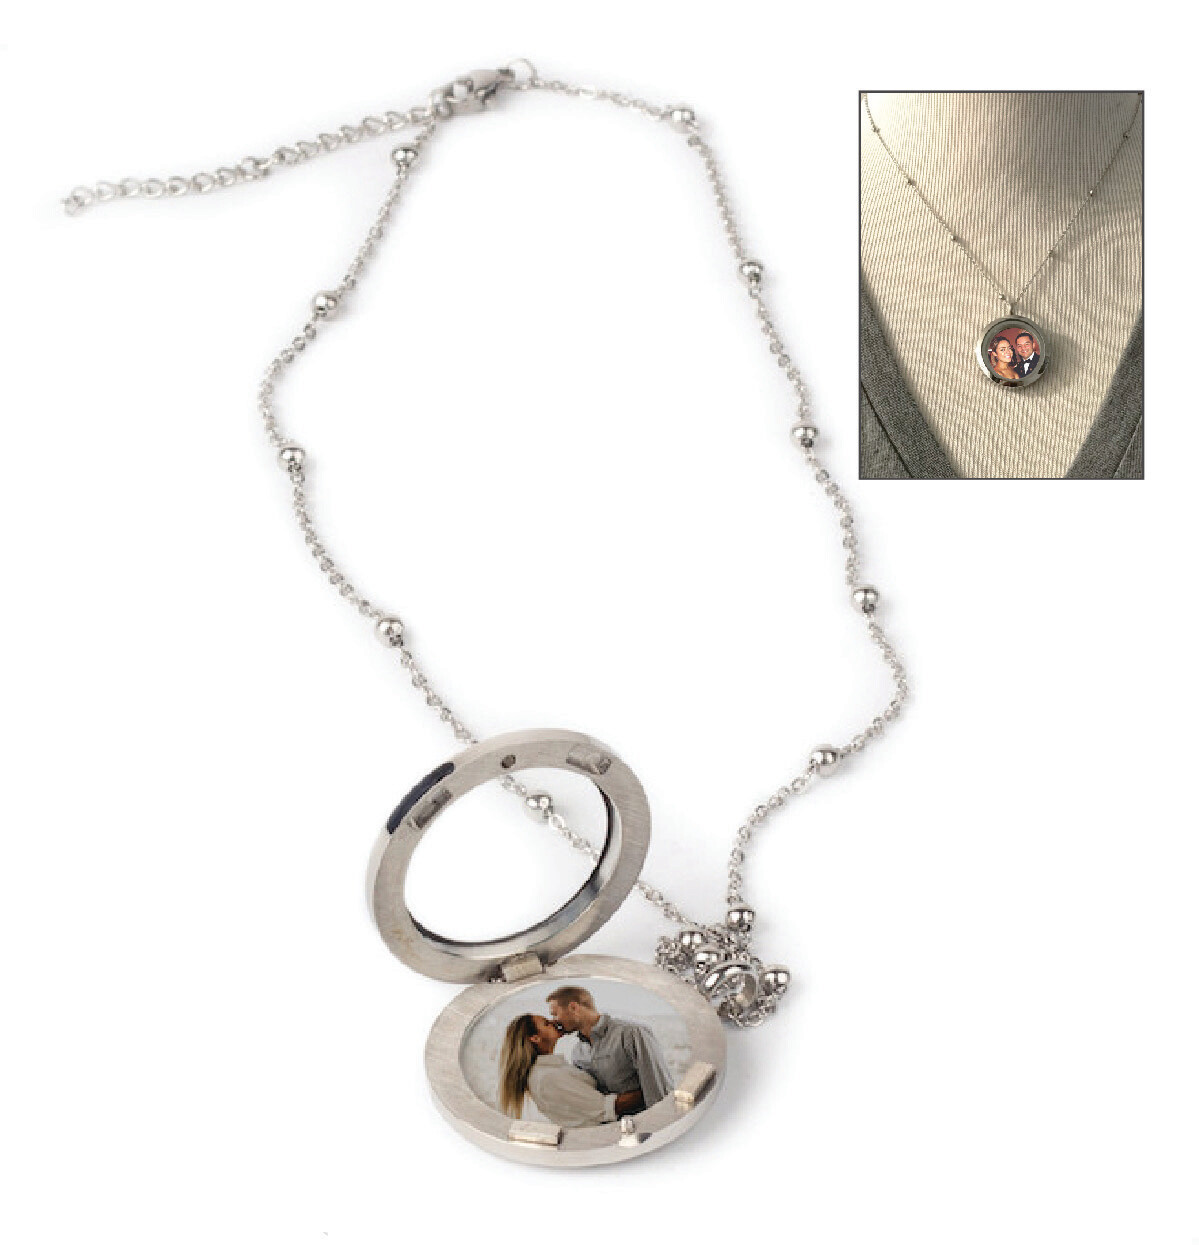 Personalized Necklace with Glass Locket